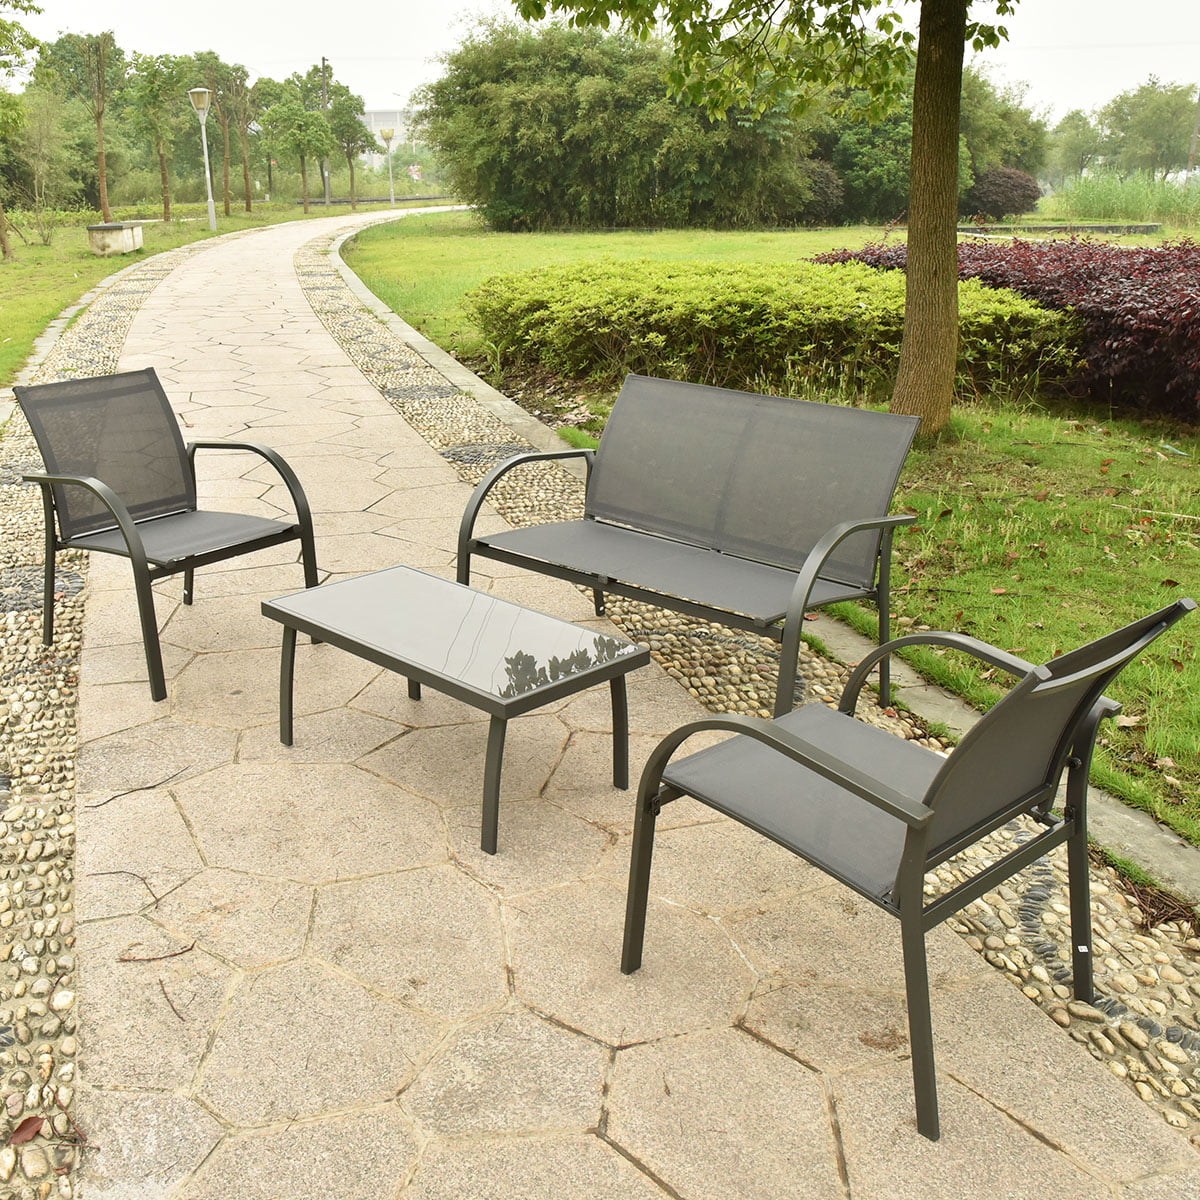 Costway 4PCS Patio Garden Furniture Set Steel Frame Outdoor Lawn Sofa Chairs Table Gray by Costway